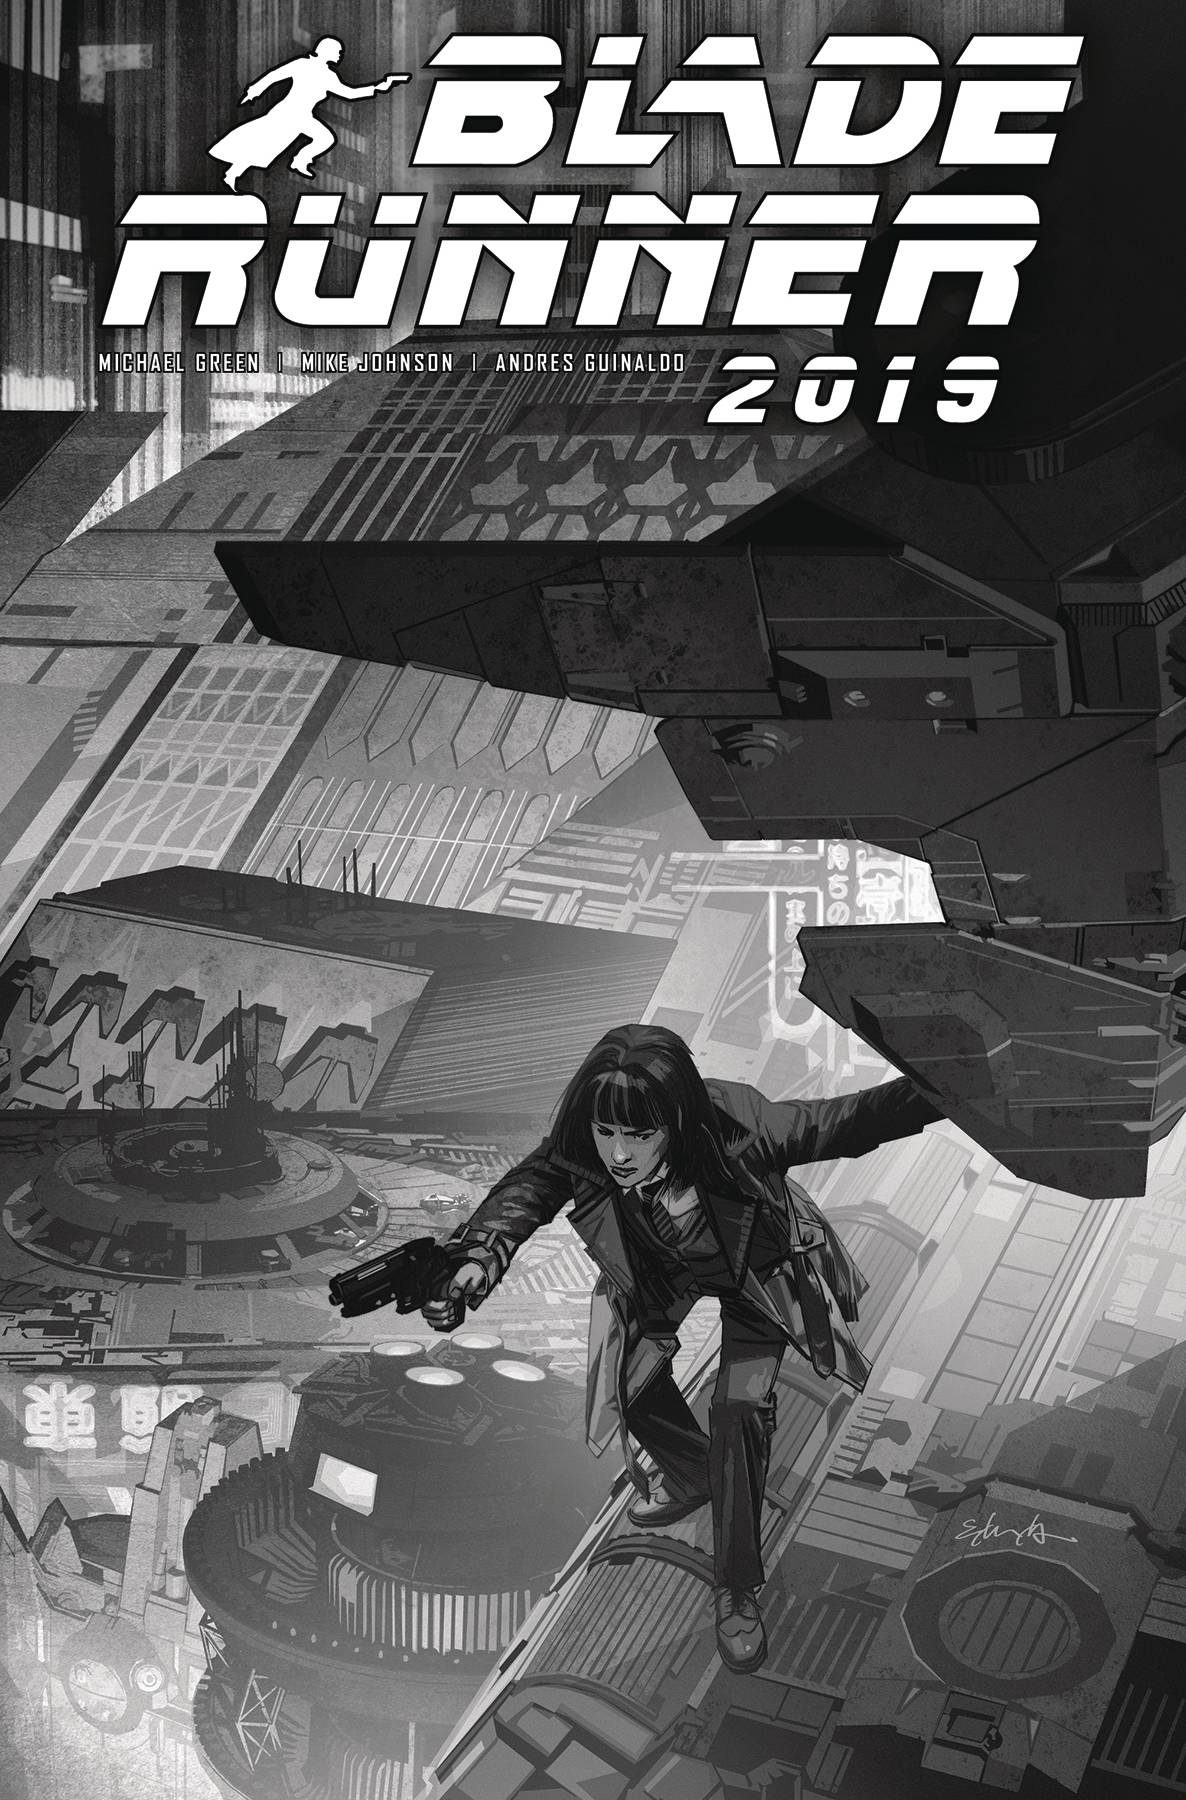 BLADE RUNNER 2019 #9 CVR E EDWARDS B&W (RES) (MR)